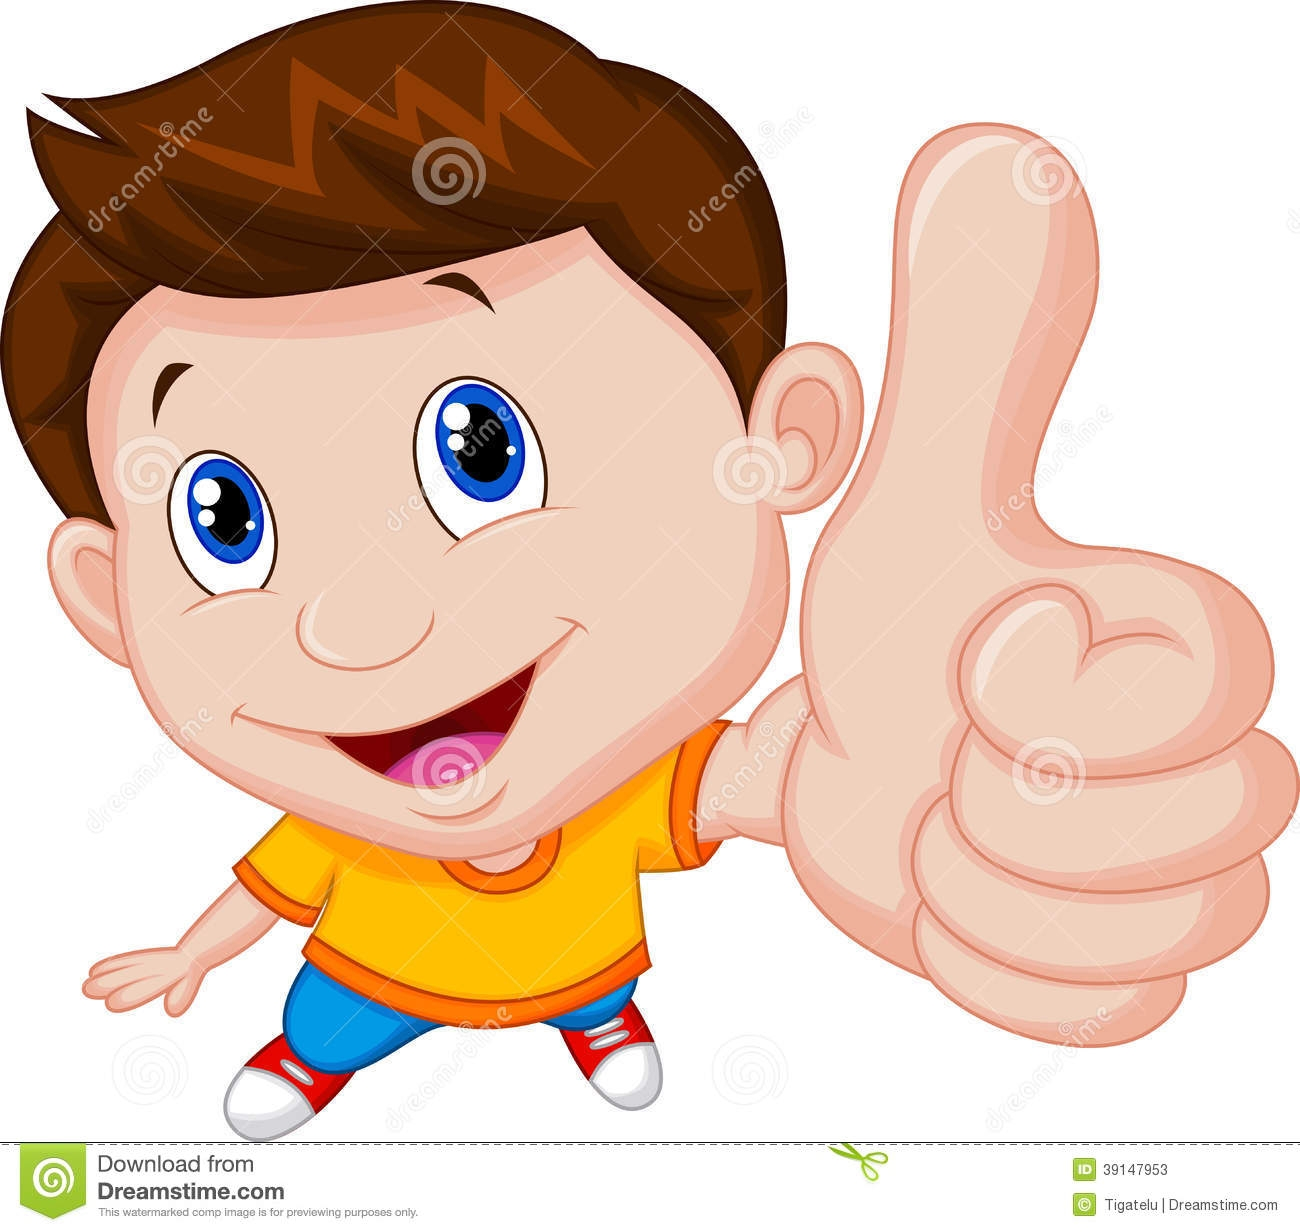 Student thumbs up clipart banner library Kid thumbs up clipart - ClipartFox banner library